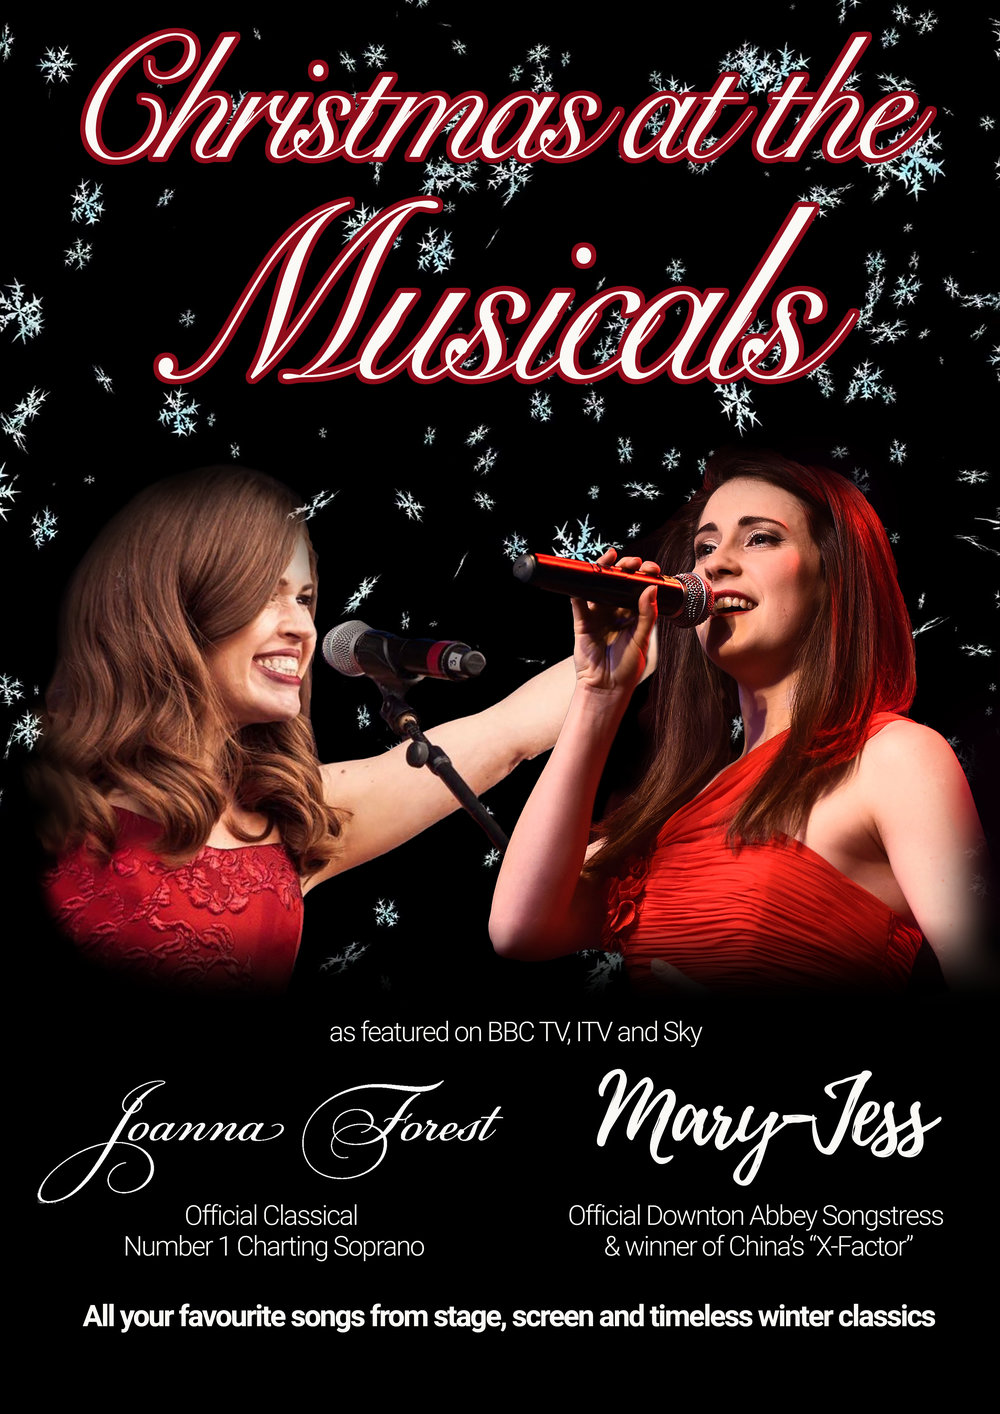 Christmas at the Musicals Poster.jpg